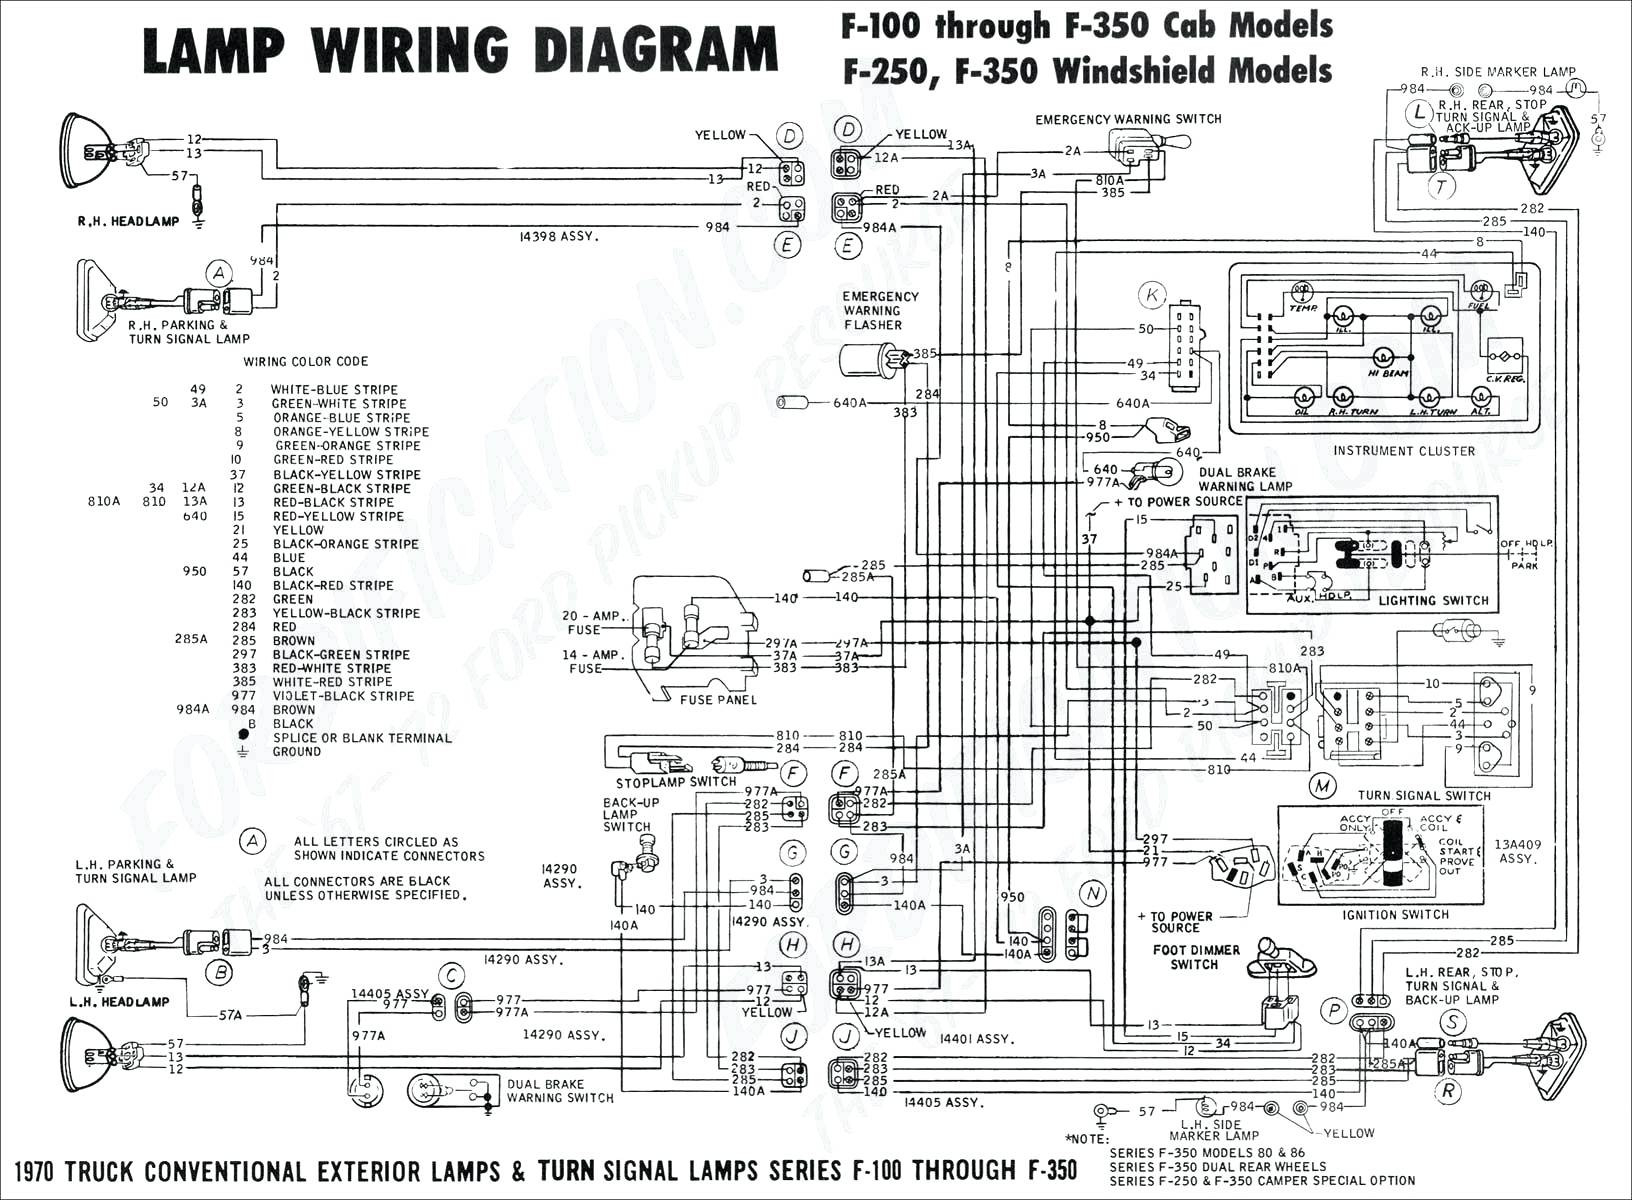 2004 Ford F250 Trailer Brake Controller Wiring Diagram from wholefoodsonabudget.com